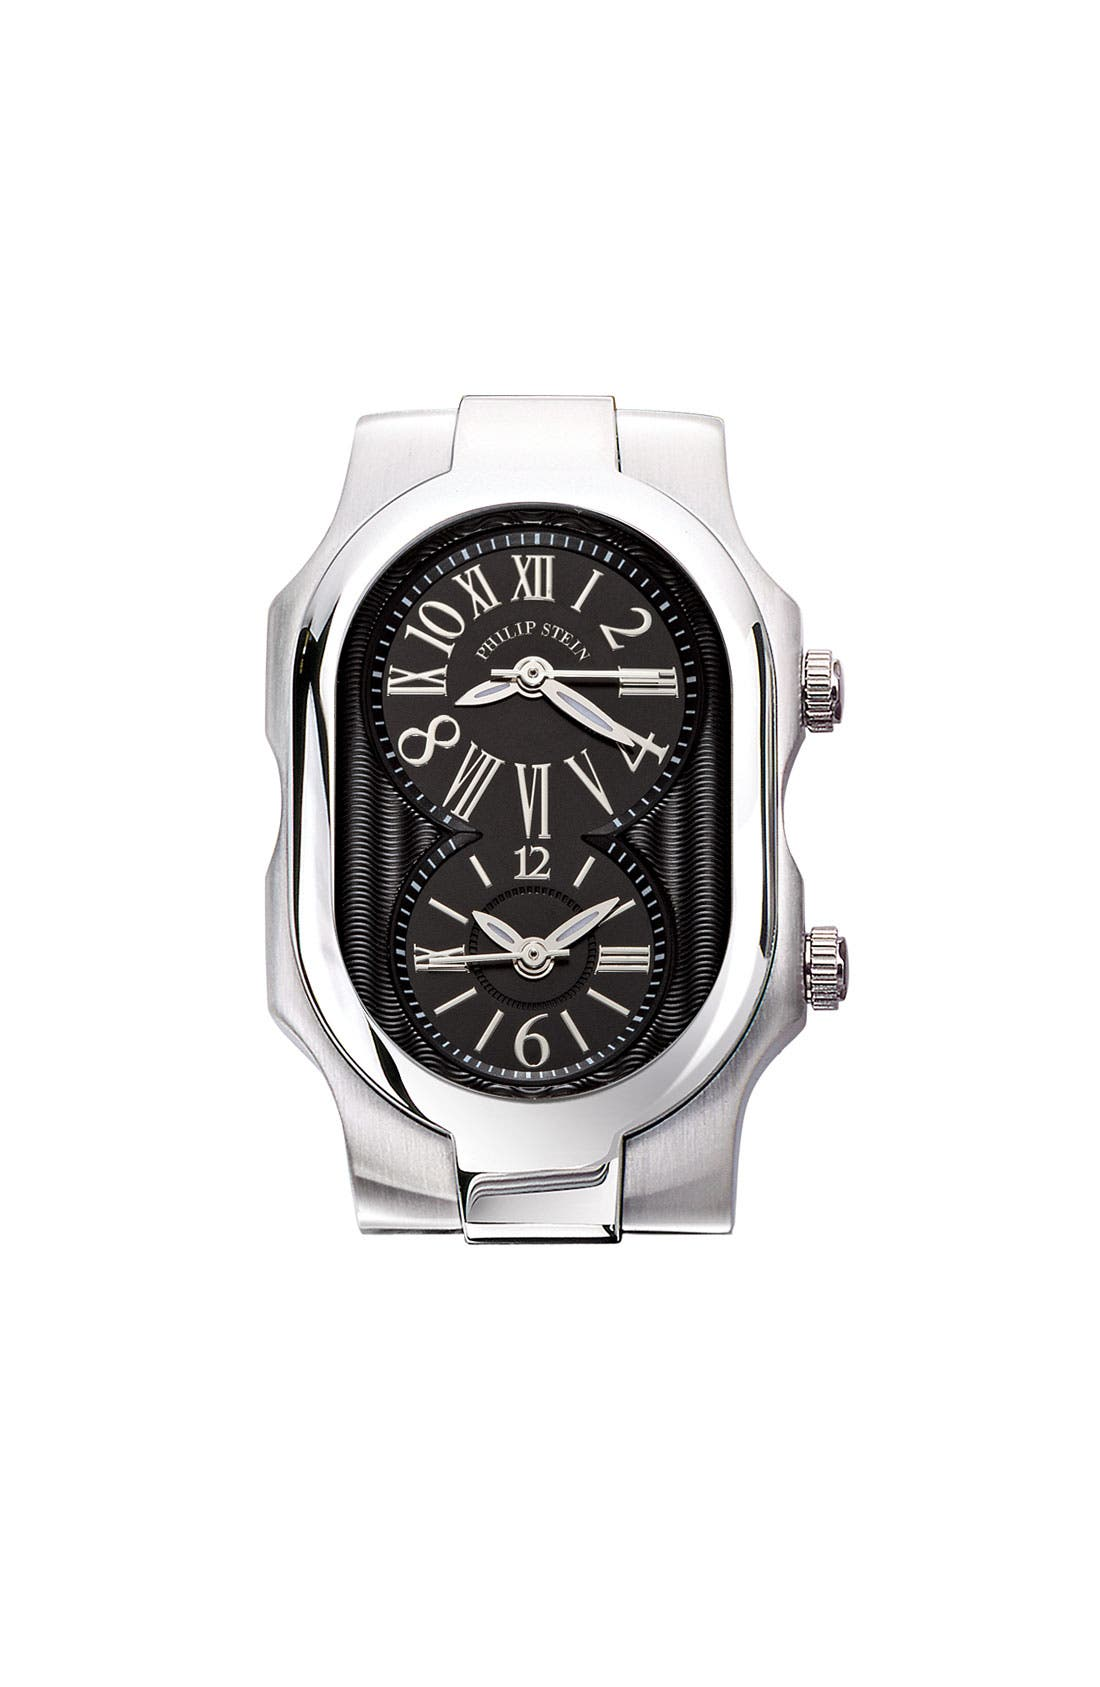 Main Image - Philip Stein® 'Signature' Small Black Dial Watch Case